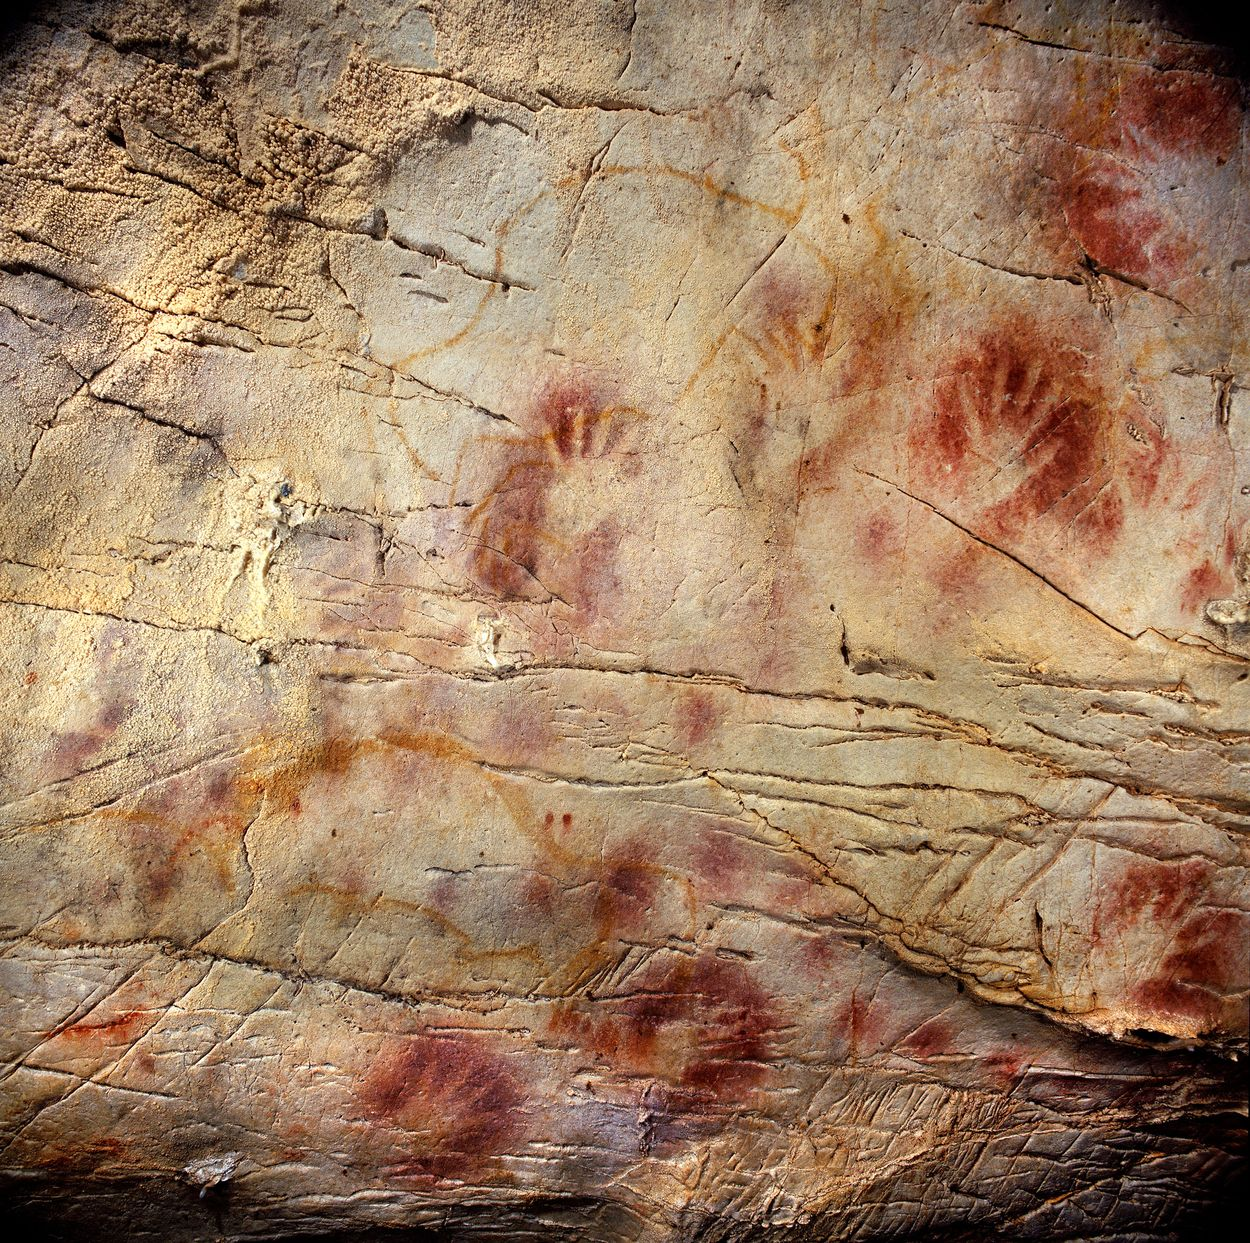 u-series dating of paleolithic art in 11 caves in spain